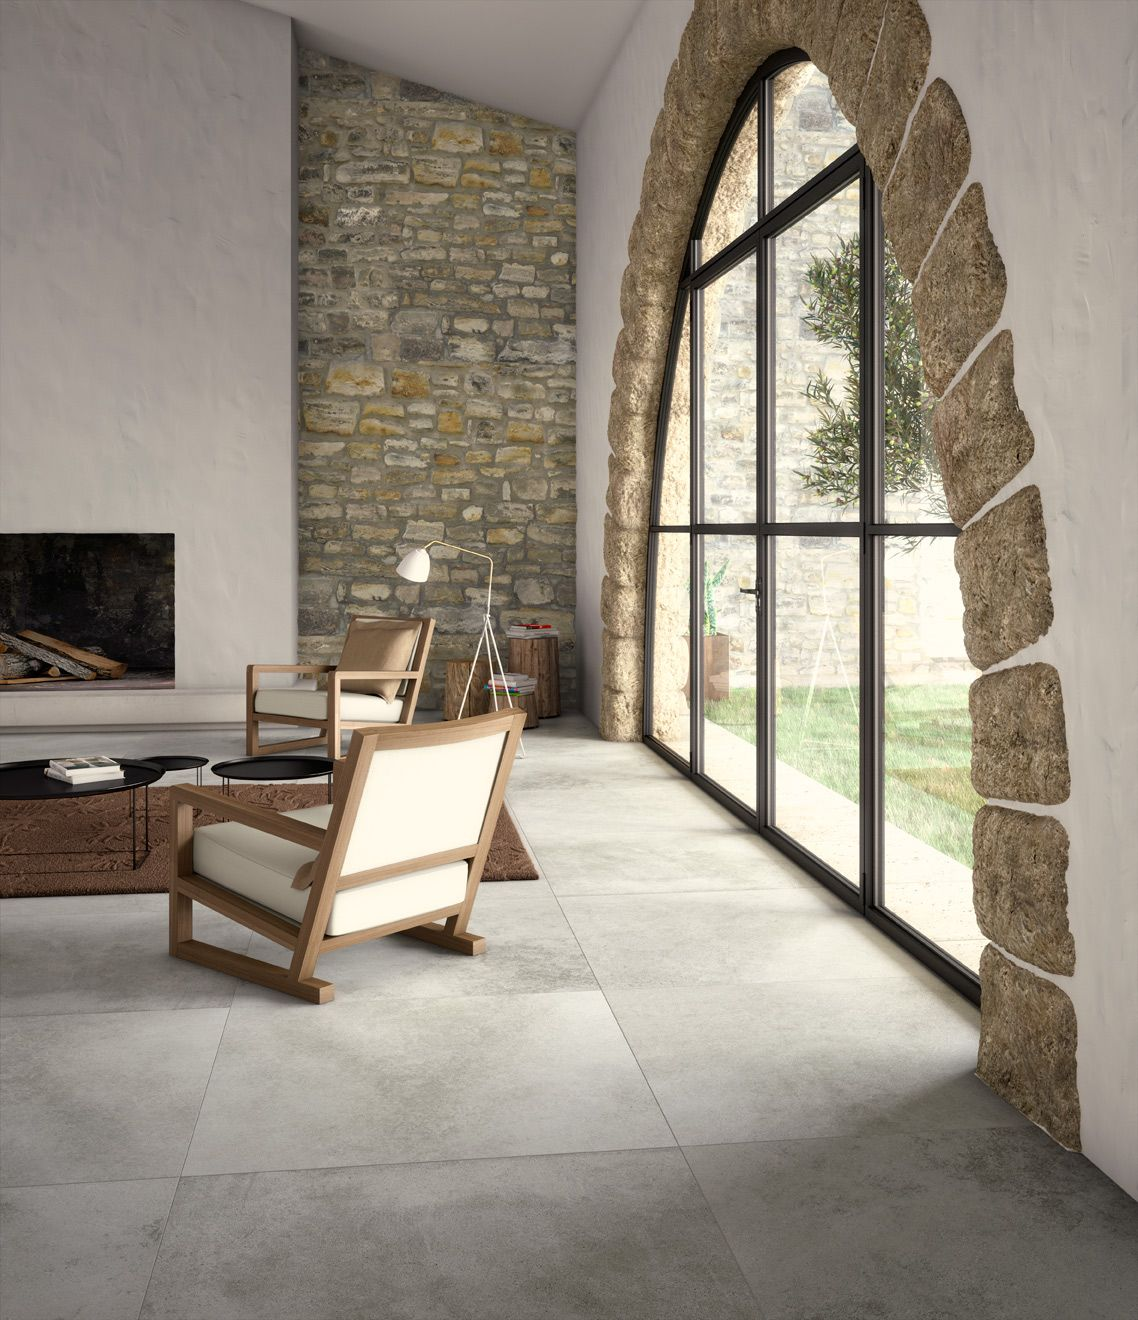 Cement Effect Surfaces For Living Room Carrelage Salon Idee Carrelage Maison